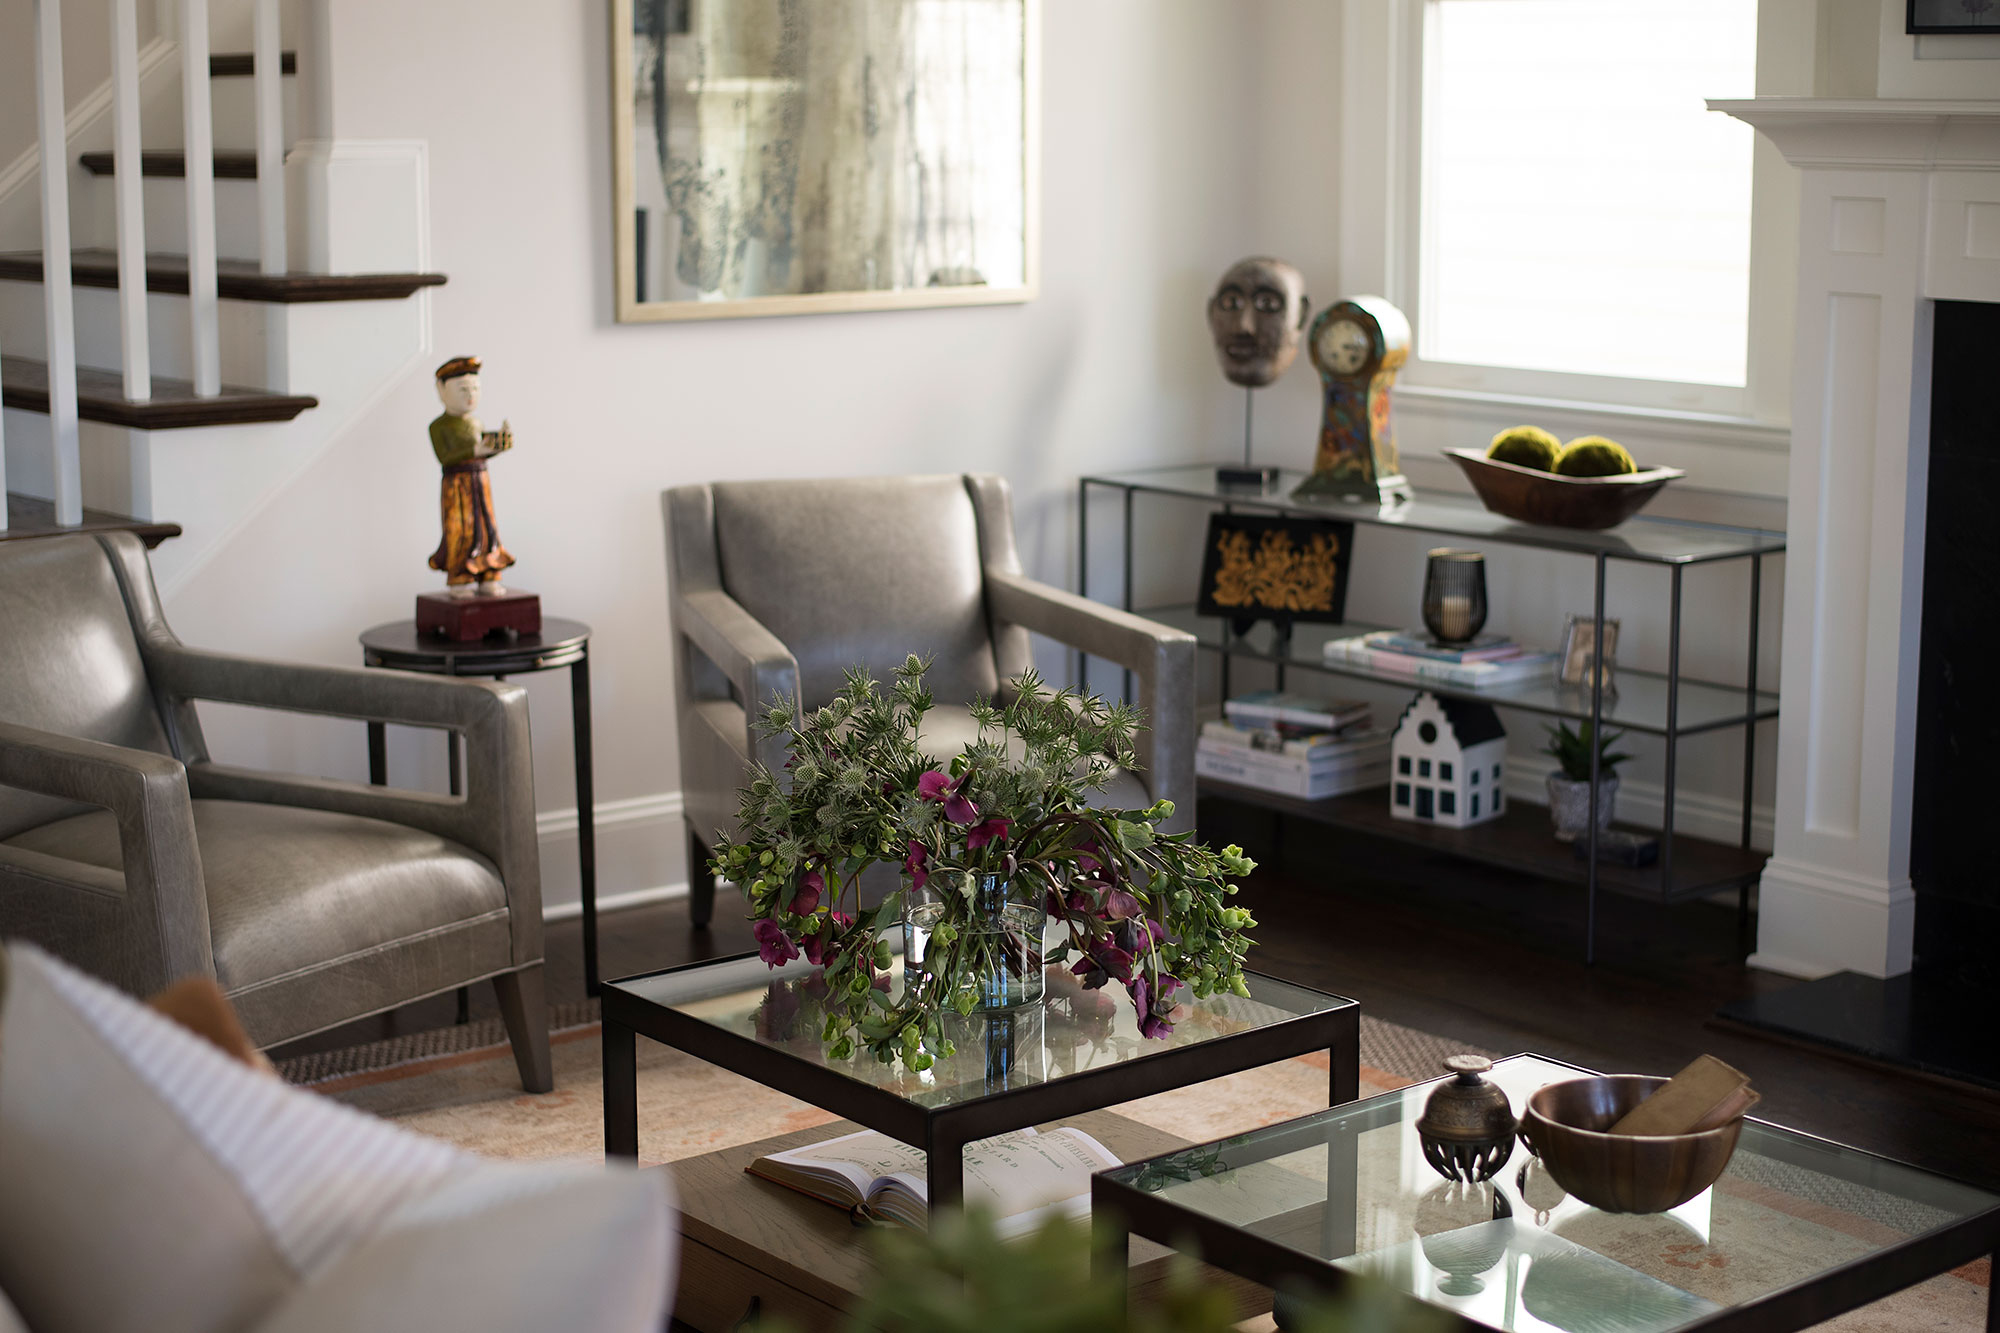 Leather chairs and glass shelving unit for displaying accessories